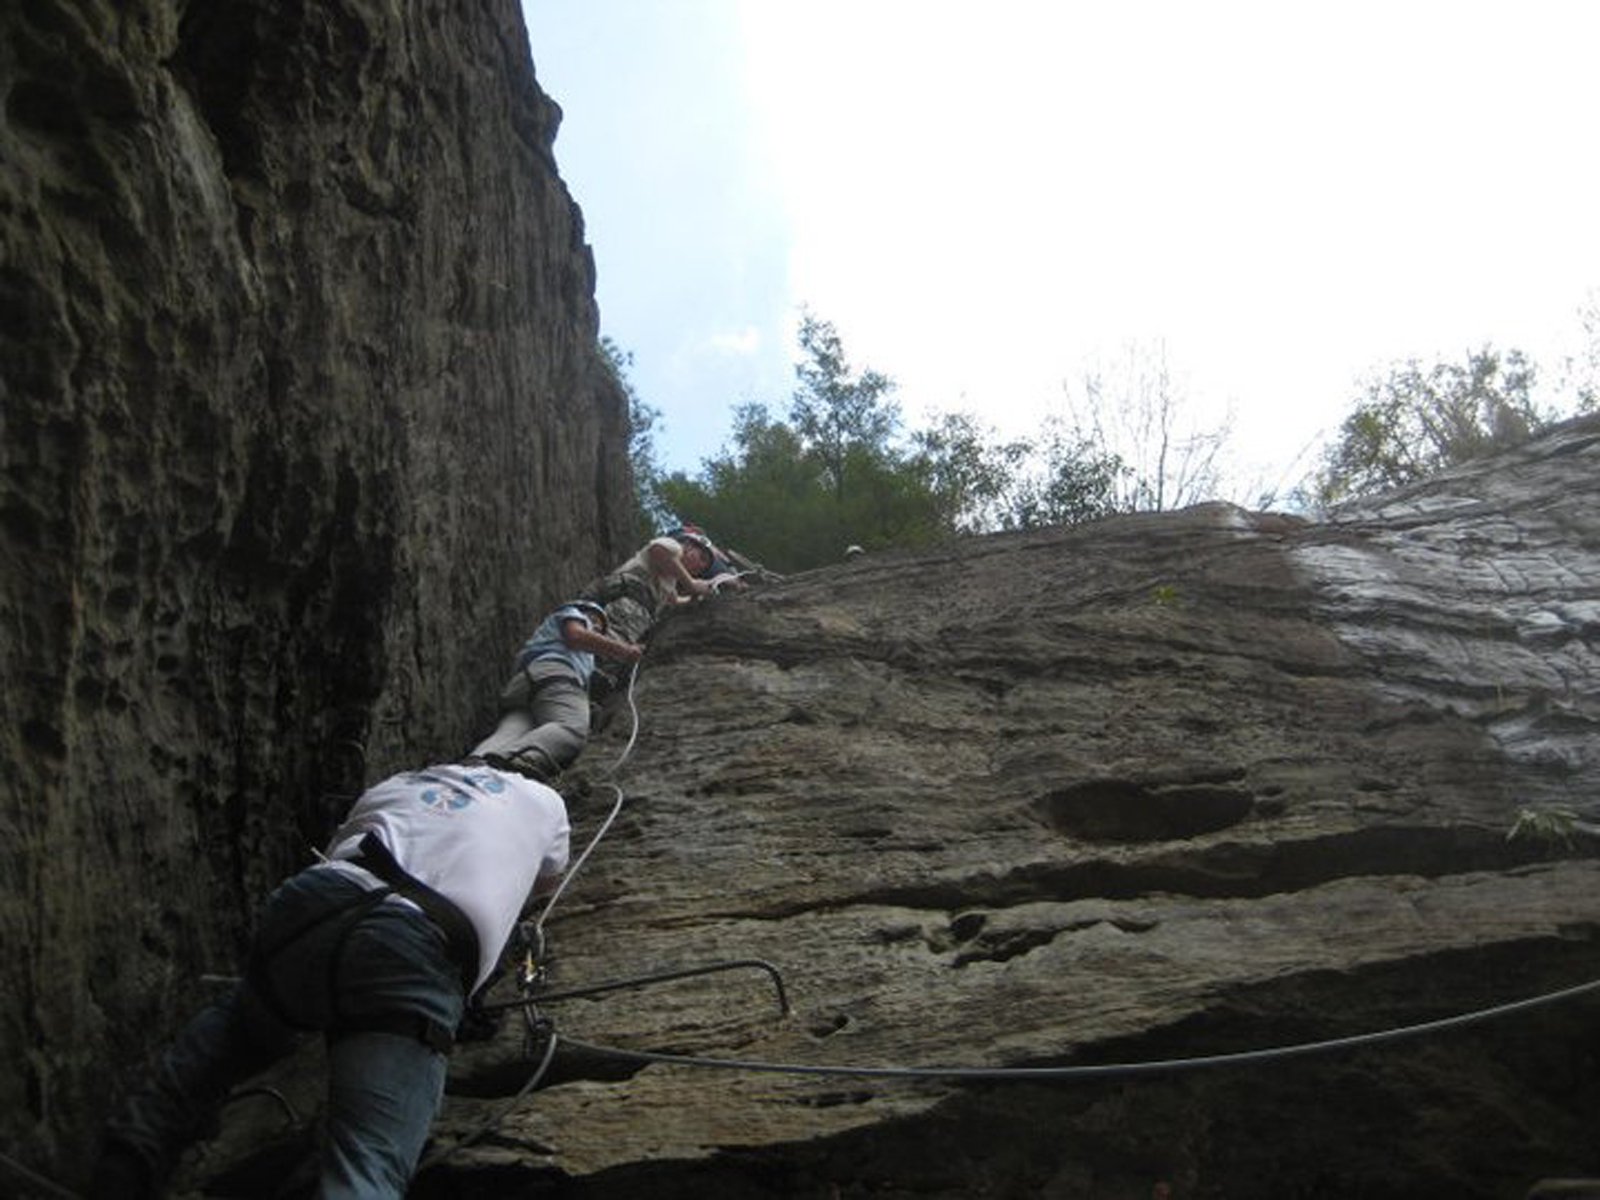 Rock Climbing in Kentucky